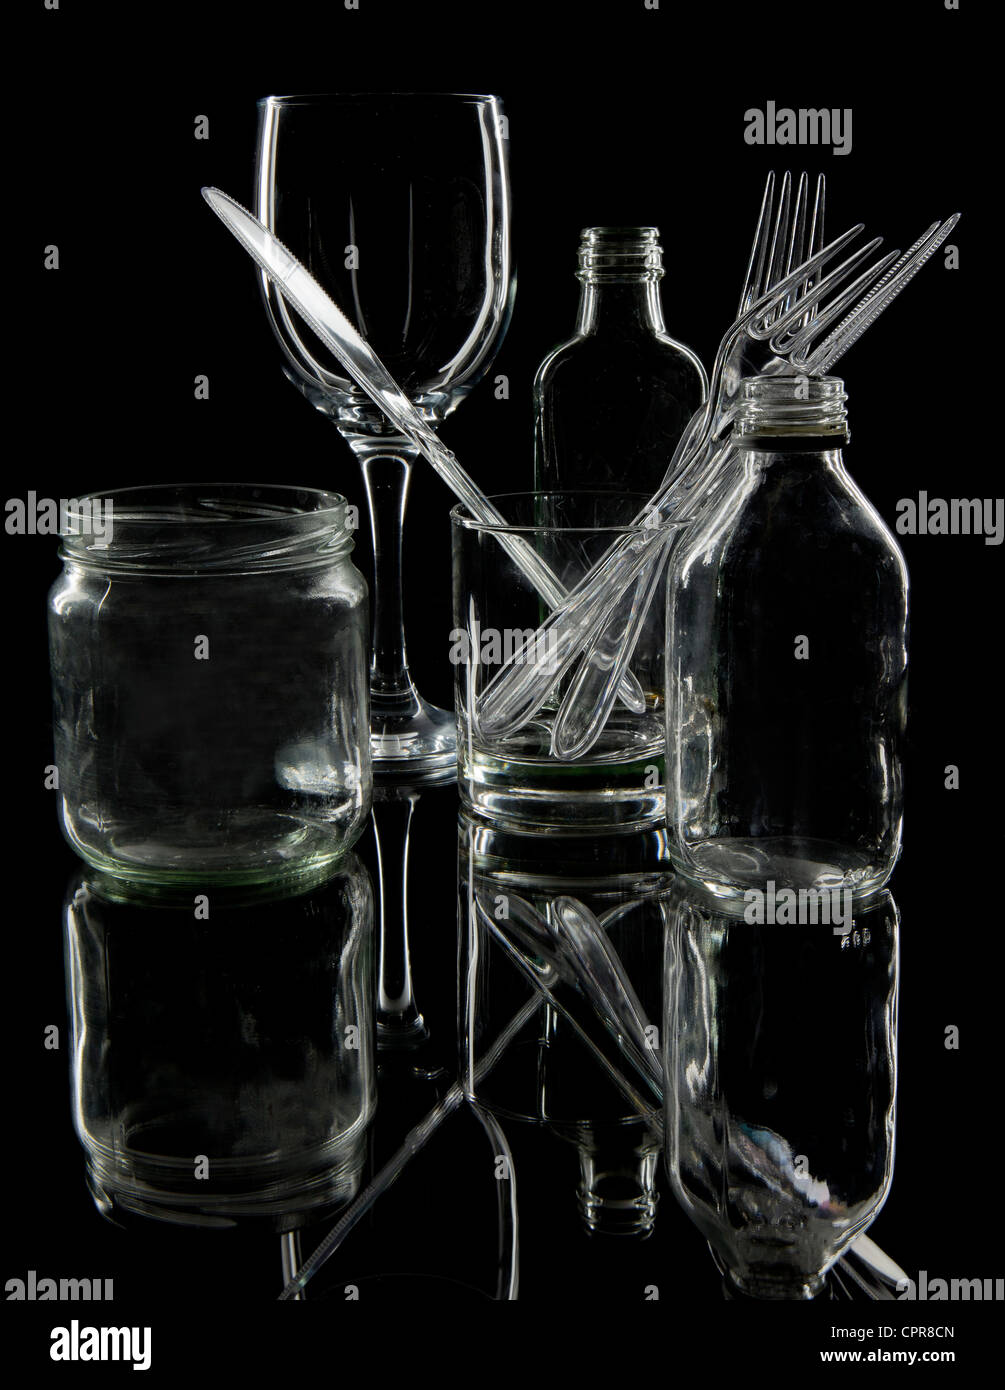 selection of glass items used in the kitchen - Stock Image